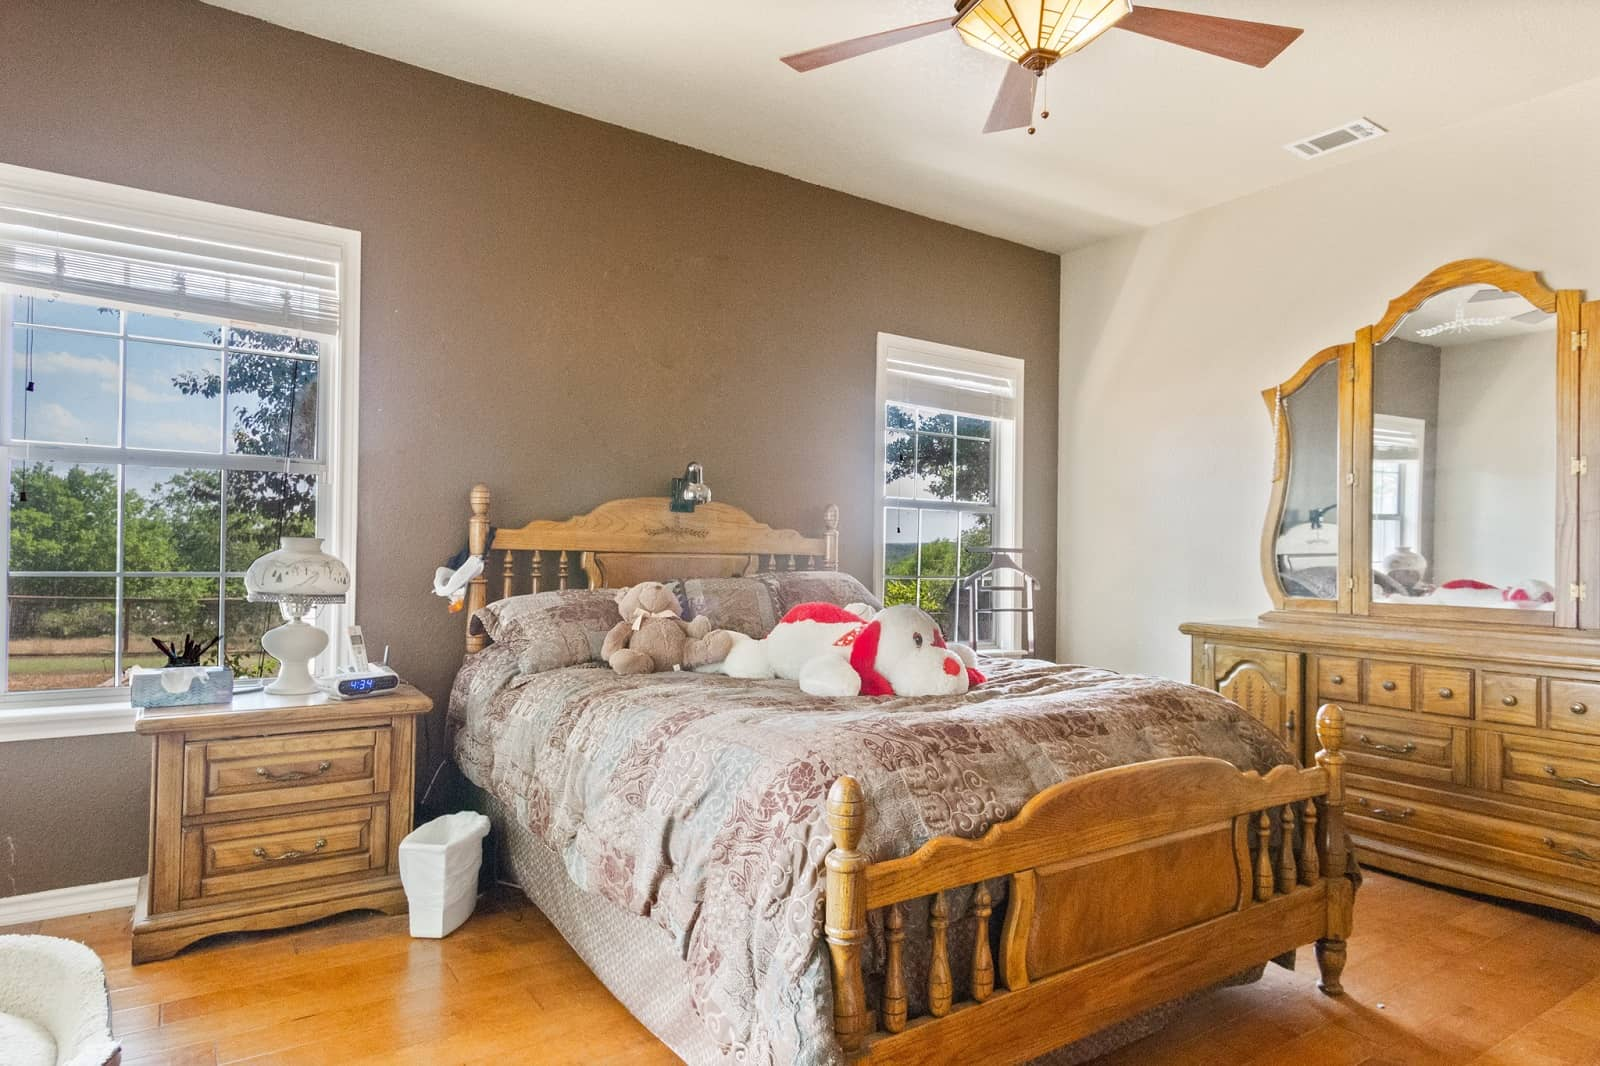 Real Estate Photography in San Marcos - TX - Bedroom View